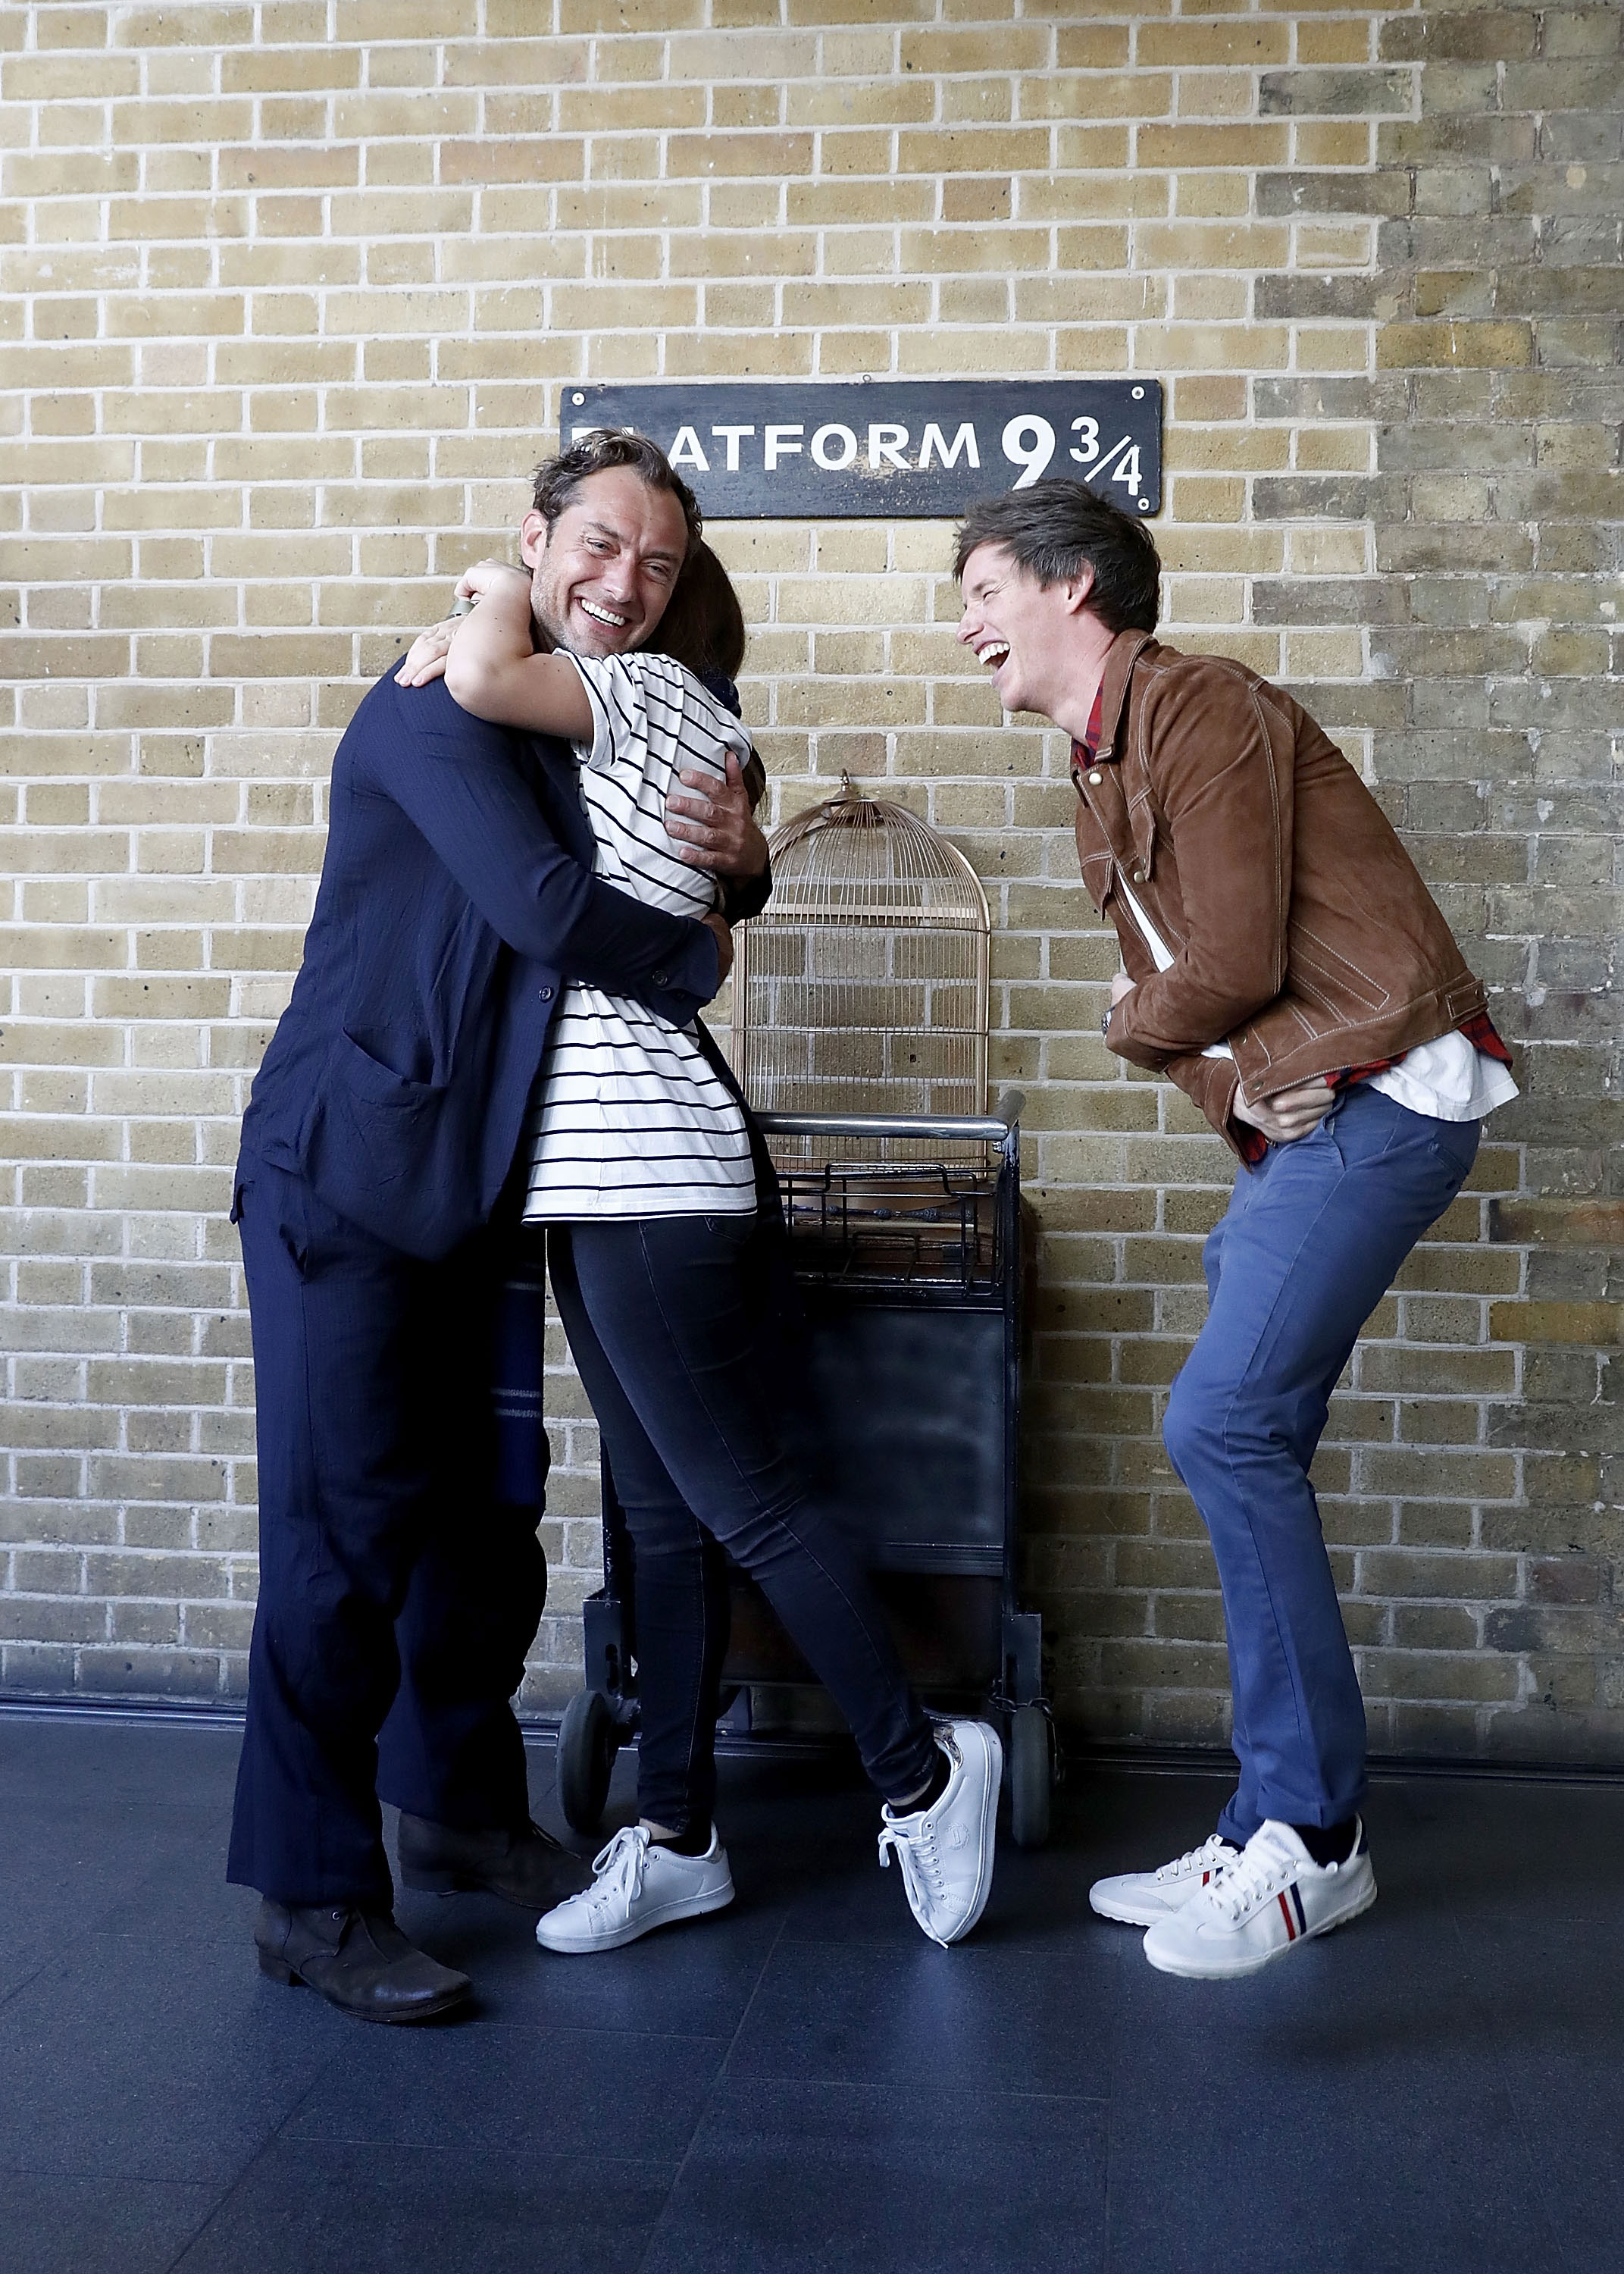 A lucky fan gives Law a hug as Redmayne laughs.